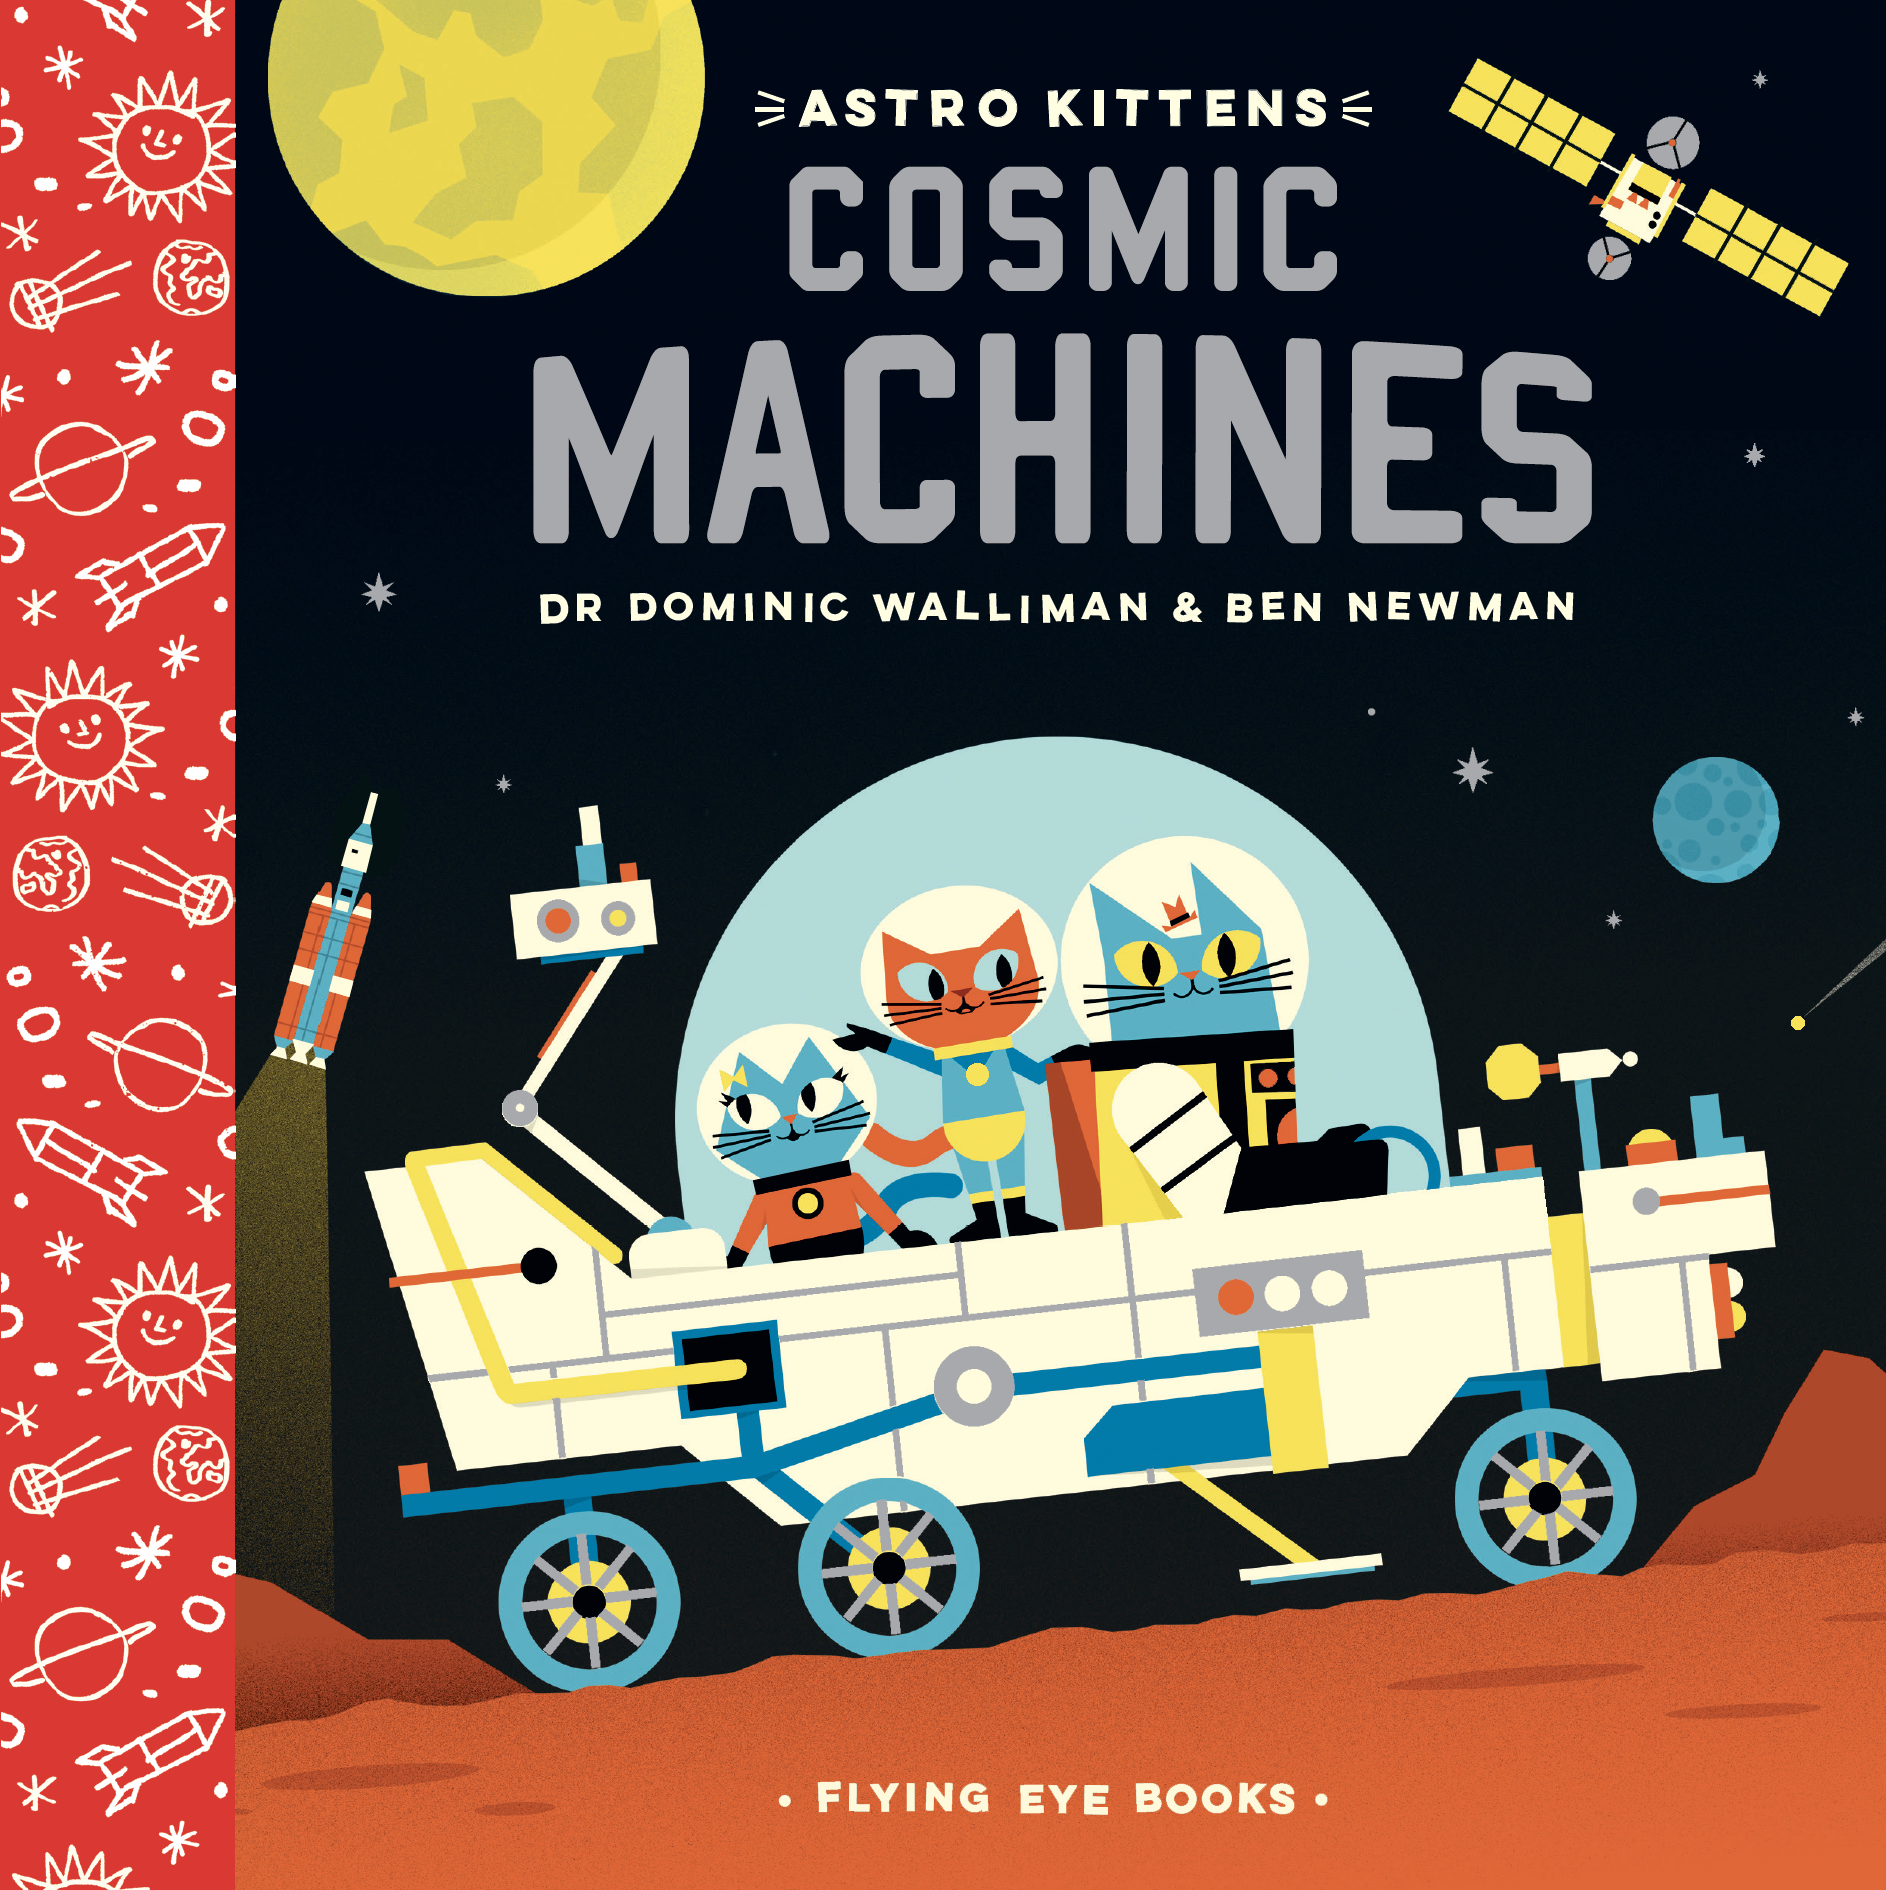 ASTRO KITTEN'S COSMIC MACHINES